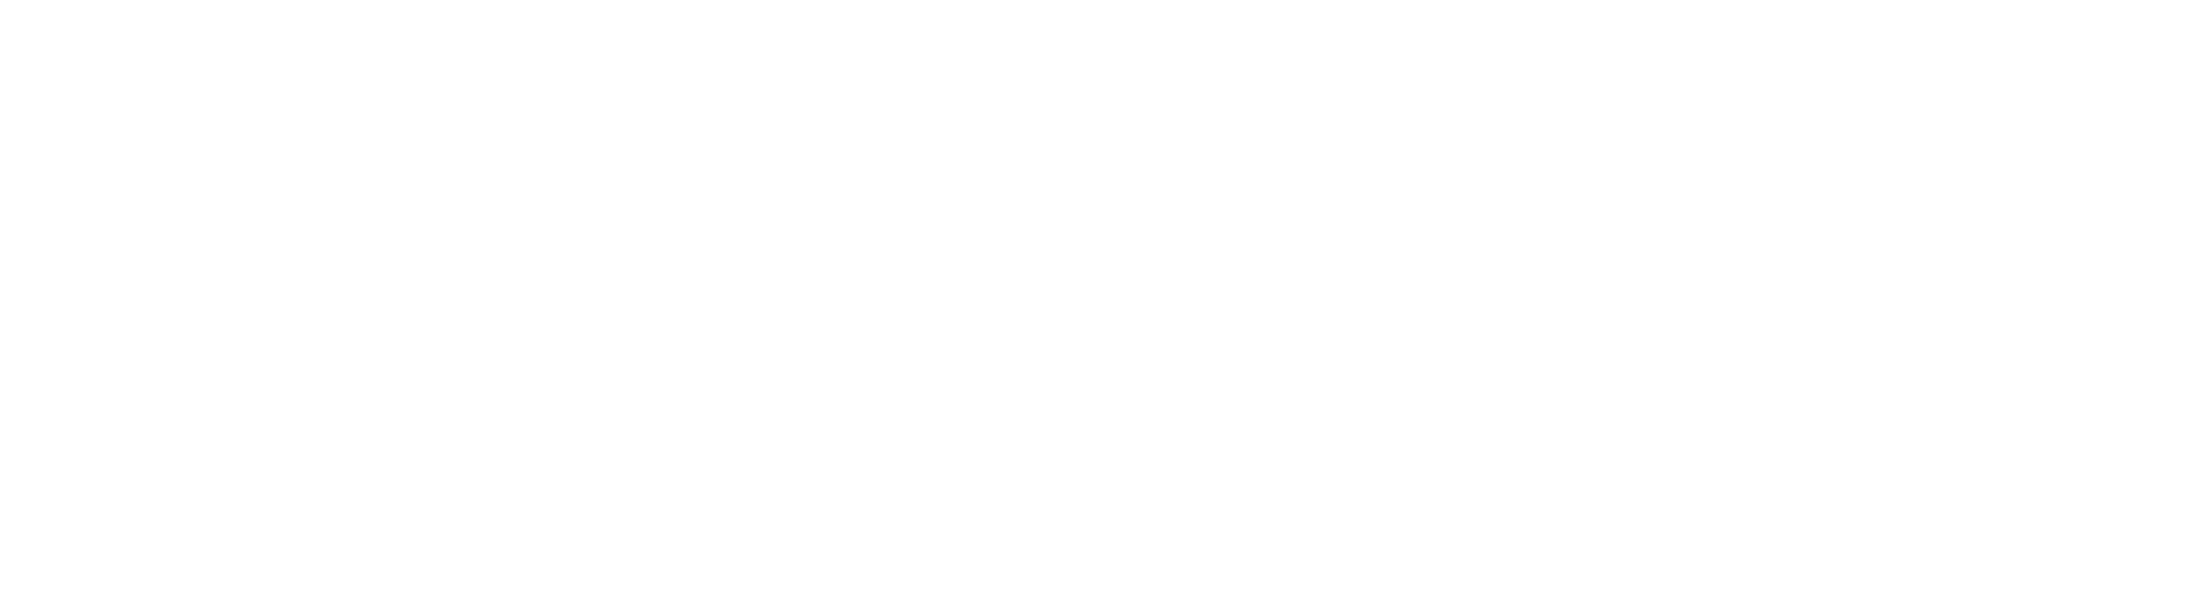 creativity_no background (1).png